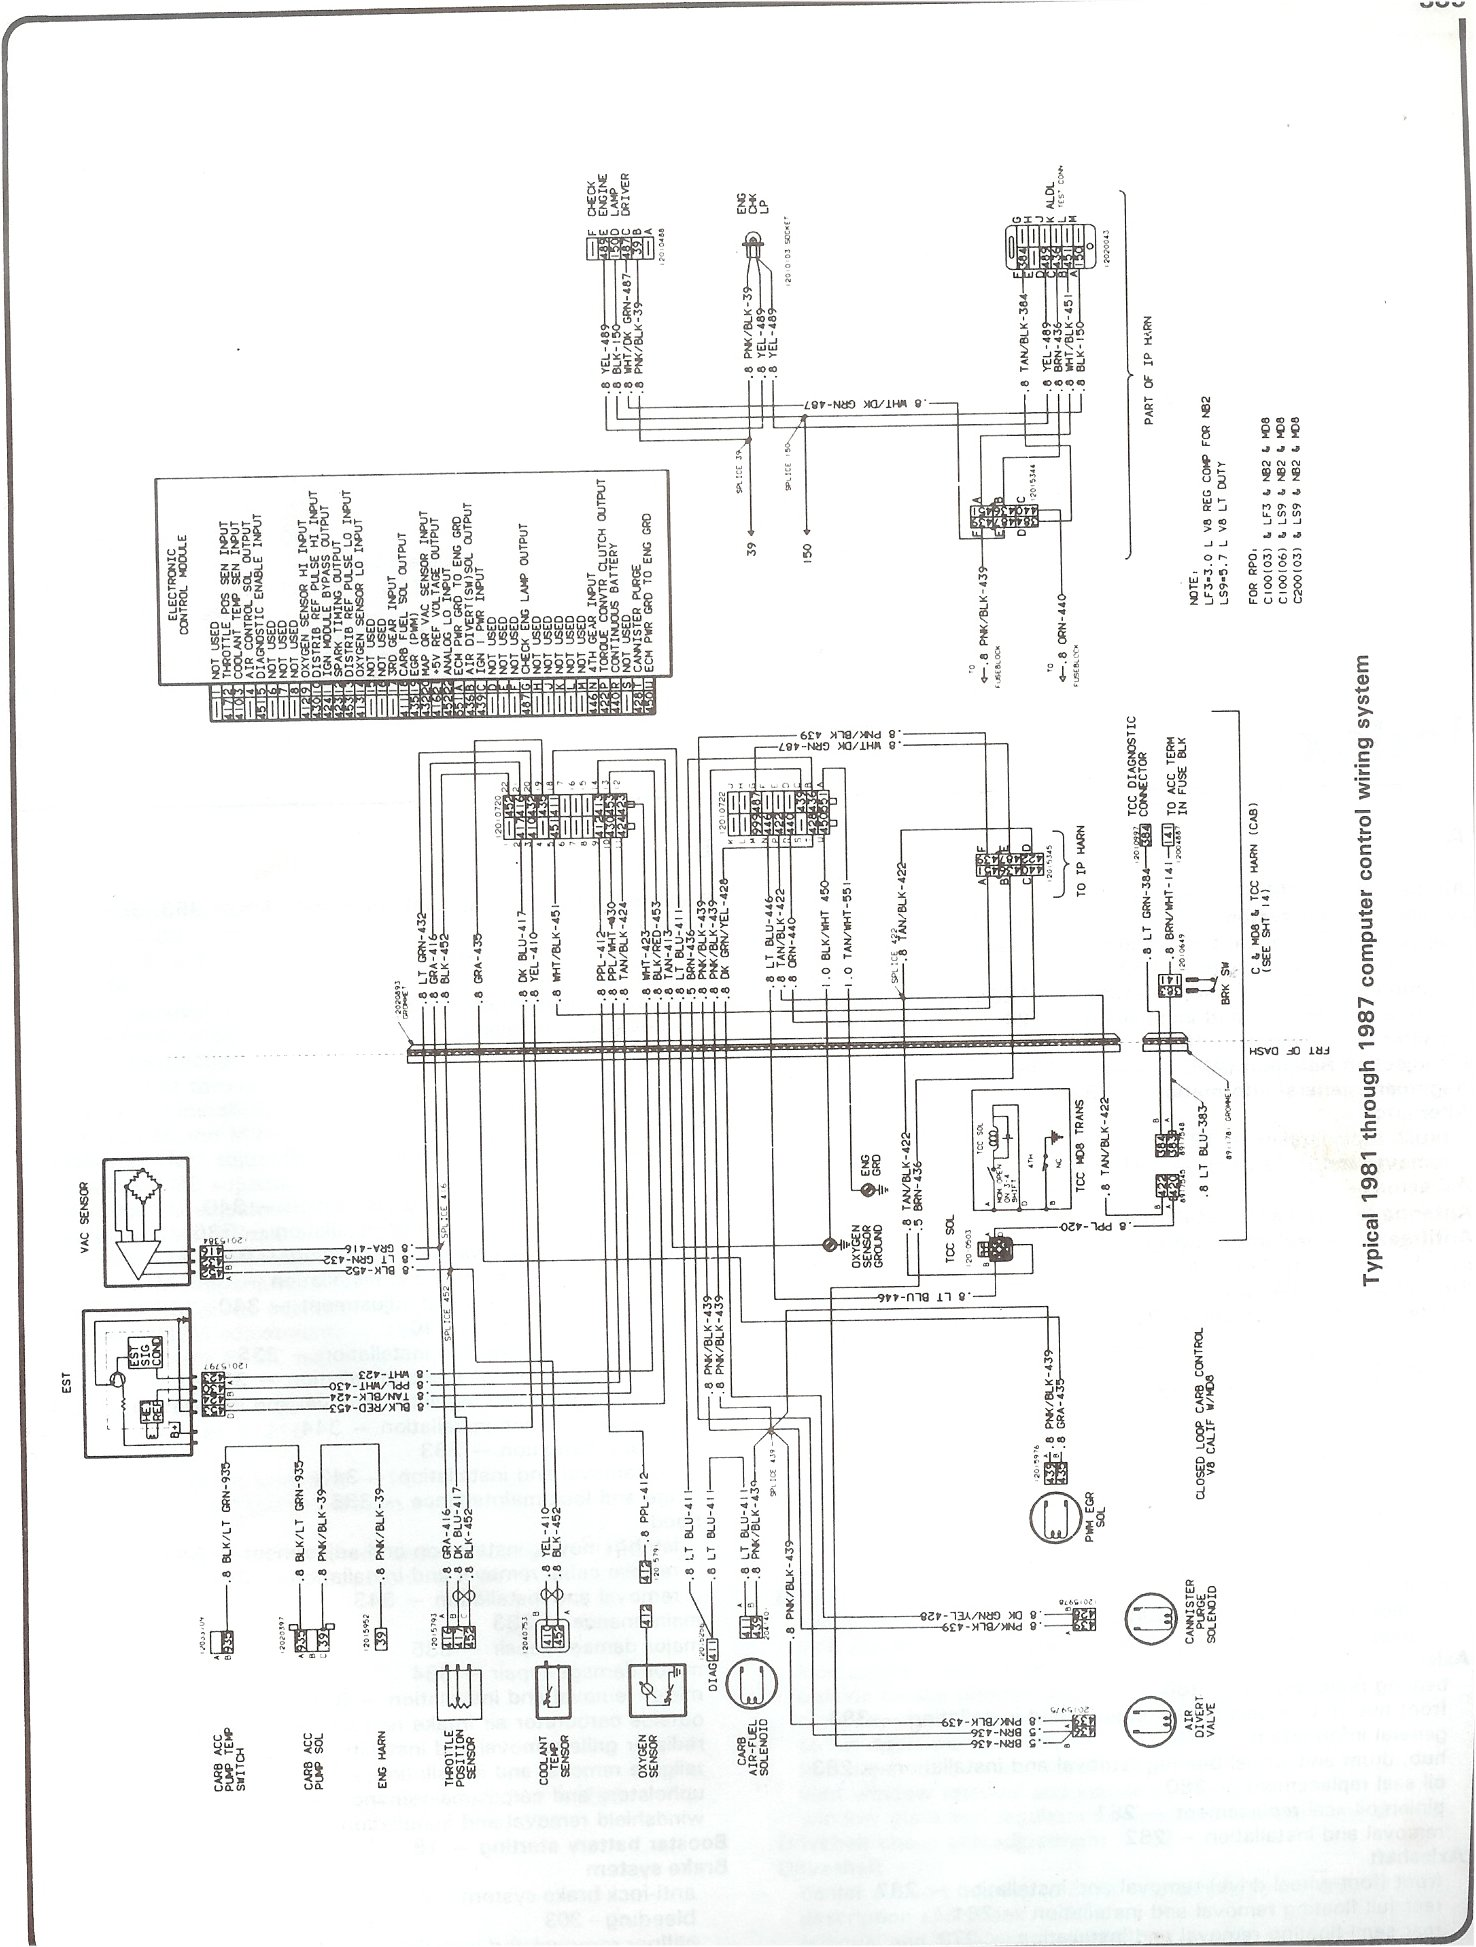 81 87_computer_control_wiring complete 73 87 wiring diagrams wiring diagram for 1984 chevy c10 at bakdesigns.co